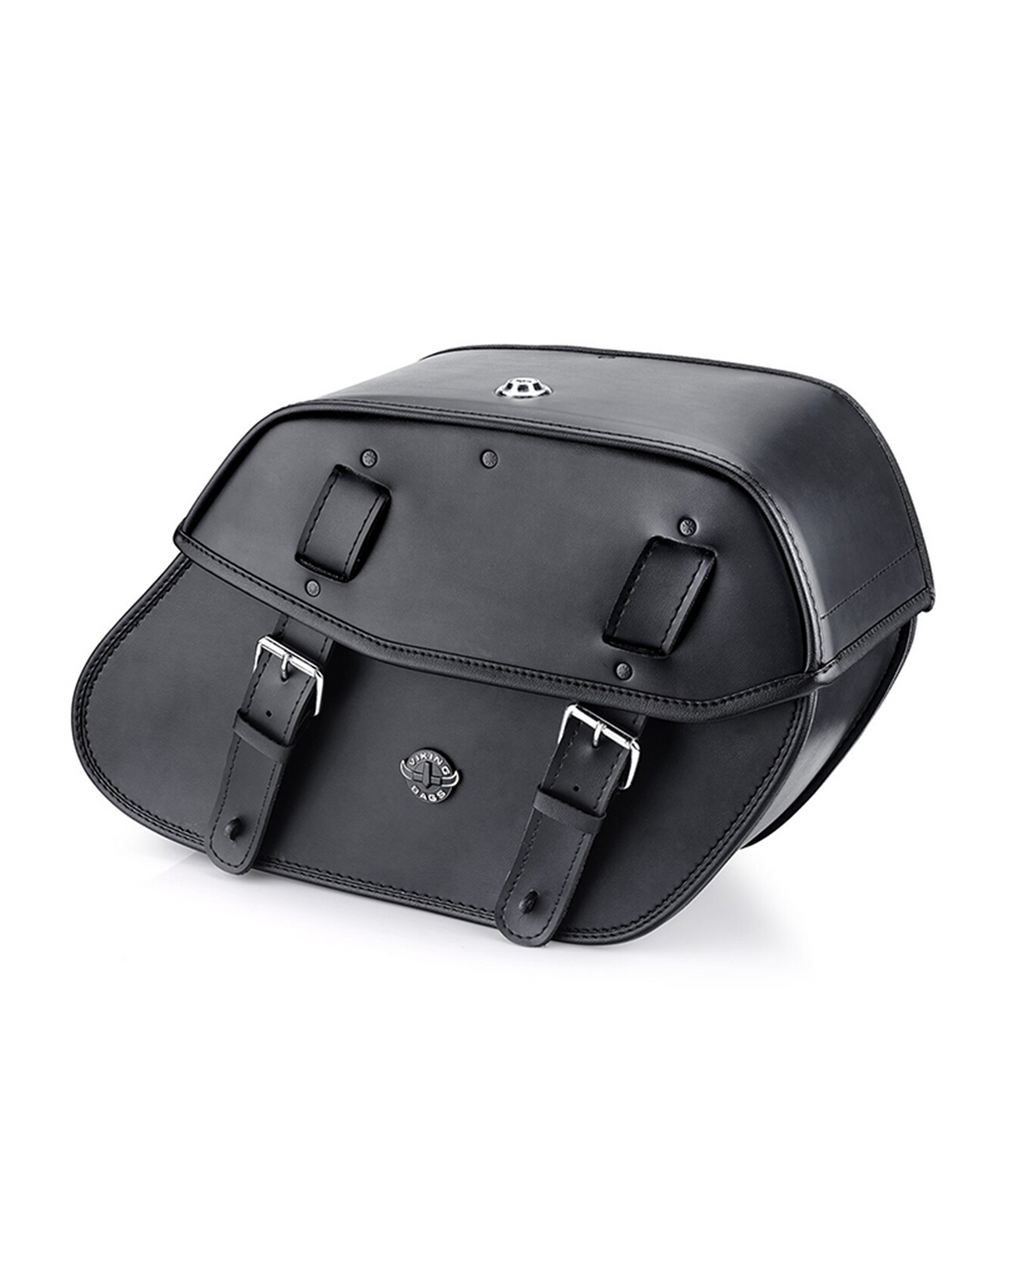 VikingBags Odin Large Double Strap Leather Motorcycle Saddlebags For Harley Softail Breakout 114 FXBRS Main View